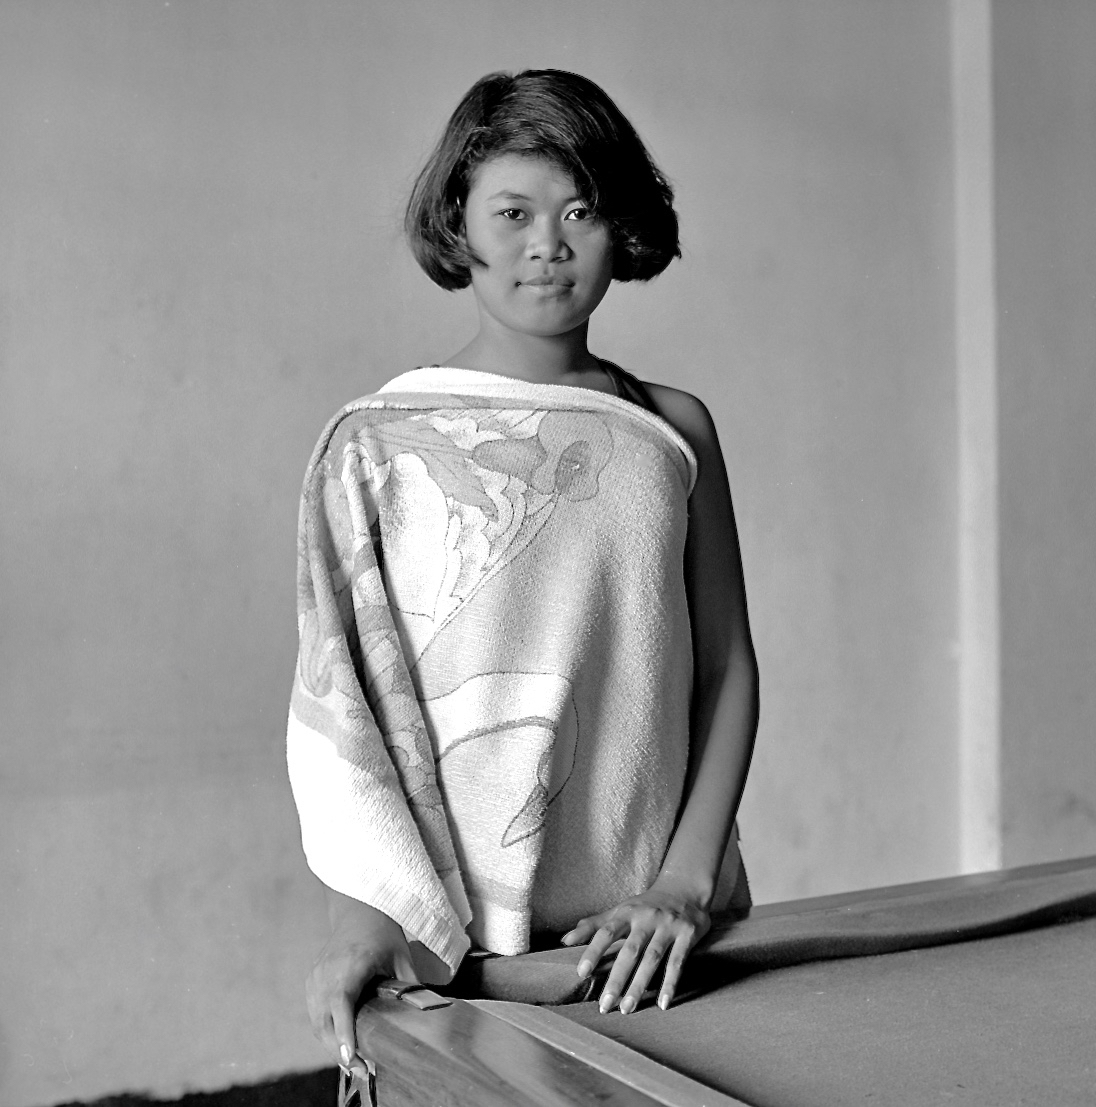 Girl in Towel, Pool Table, Subic City 1989